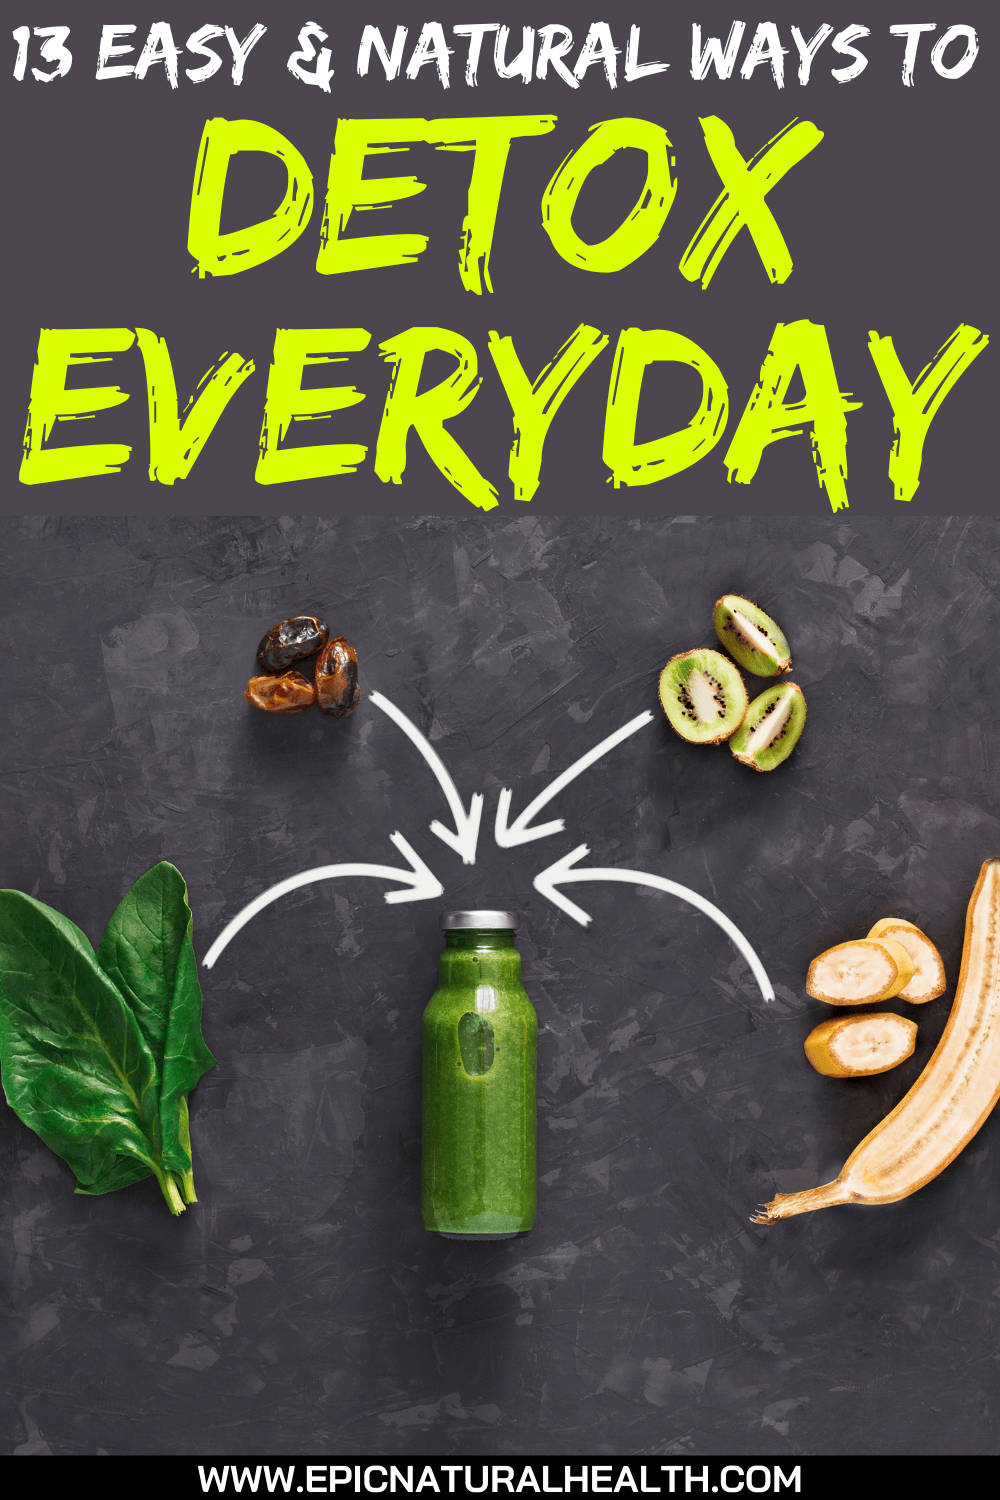 13 easy and natural ways to detox everyday